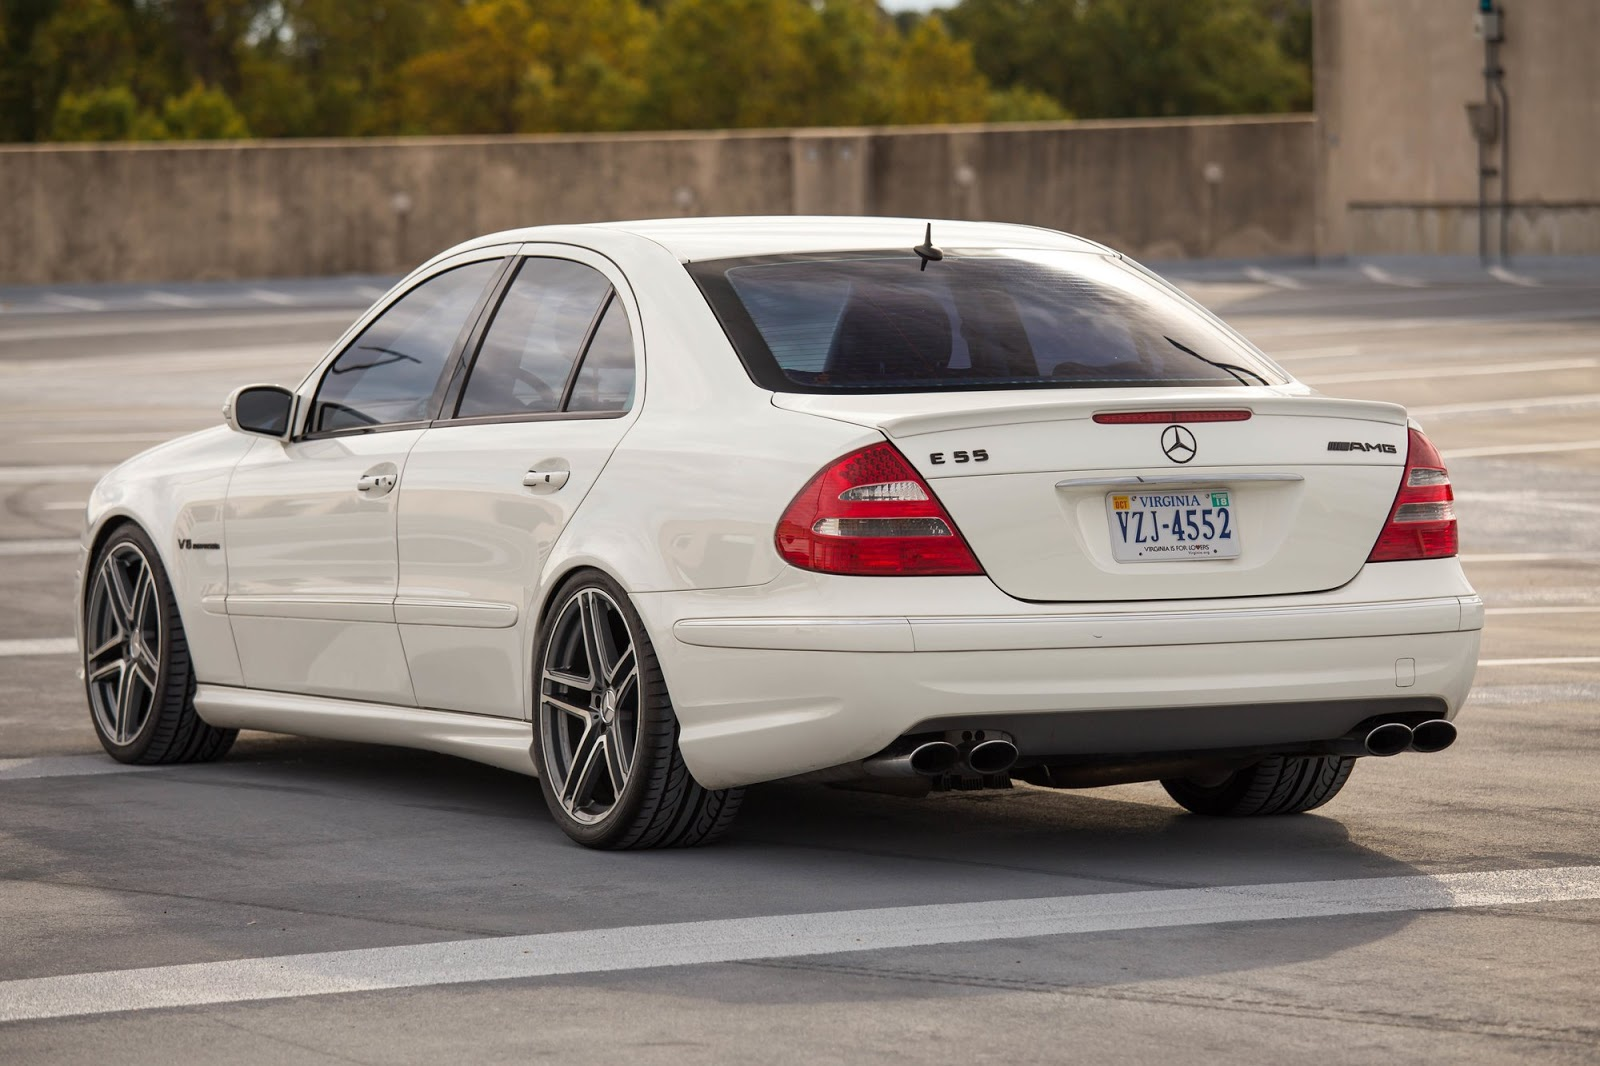 Mercedes benz w211 e55 amg on r19 sport edition st6 wheels for Mercedes benz e 55 amg